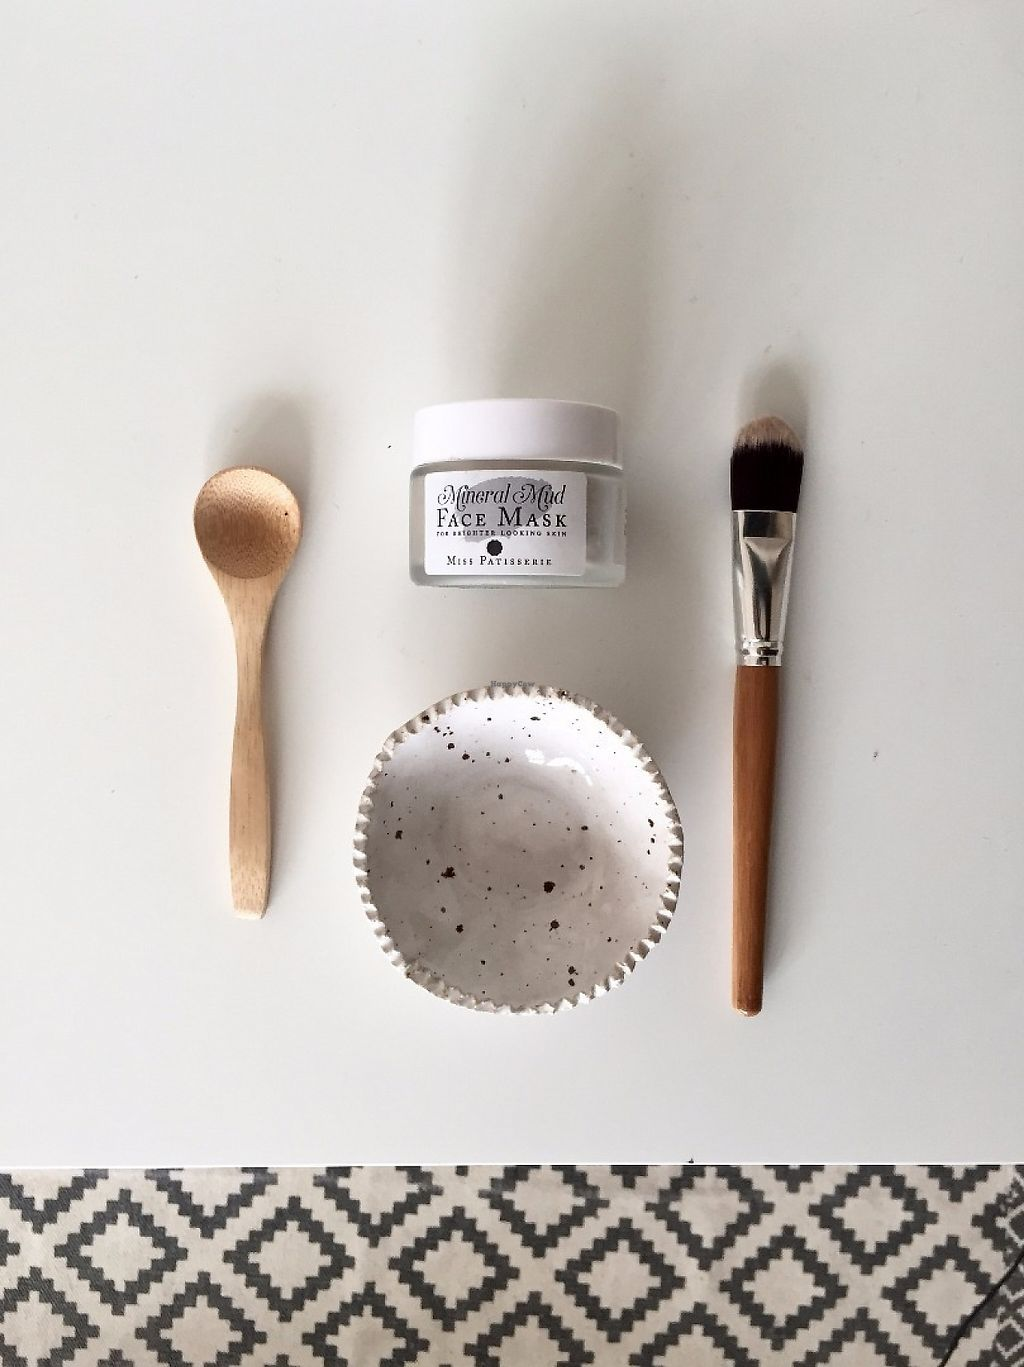 """Photo of Miss Patisserie  by <a href=""""/members/profile/T_Z"""">T_Z</a> <br/>A photo from the Miss Patisserie Instagram of their powdered face mask <br/> May 18, 2017  - <a href='/contact/abuse/image/87834/259866'>Report</a>"""